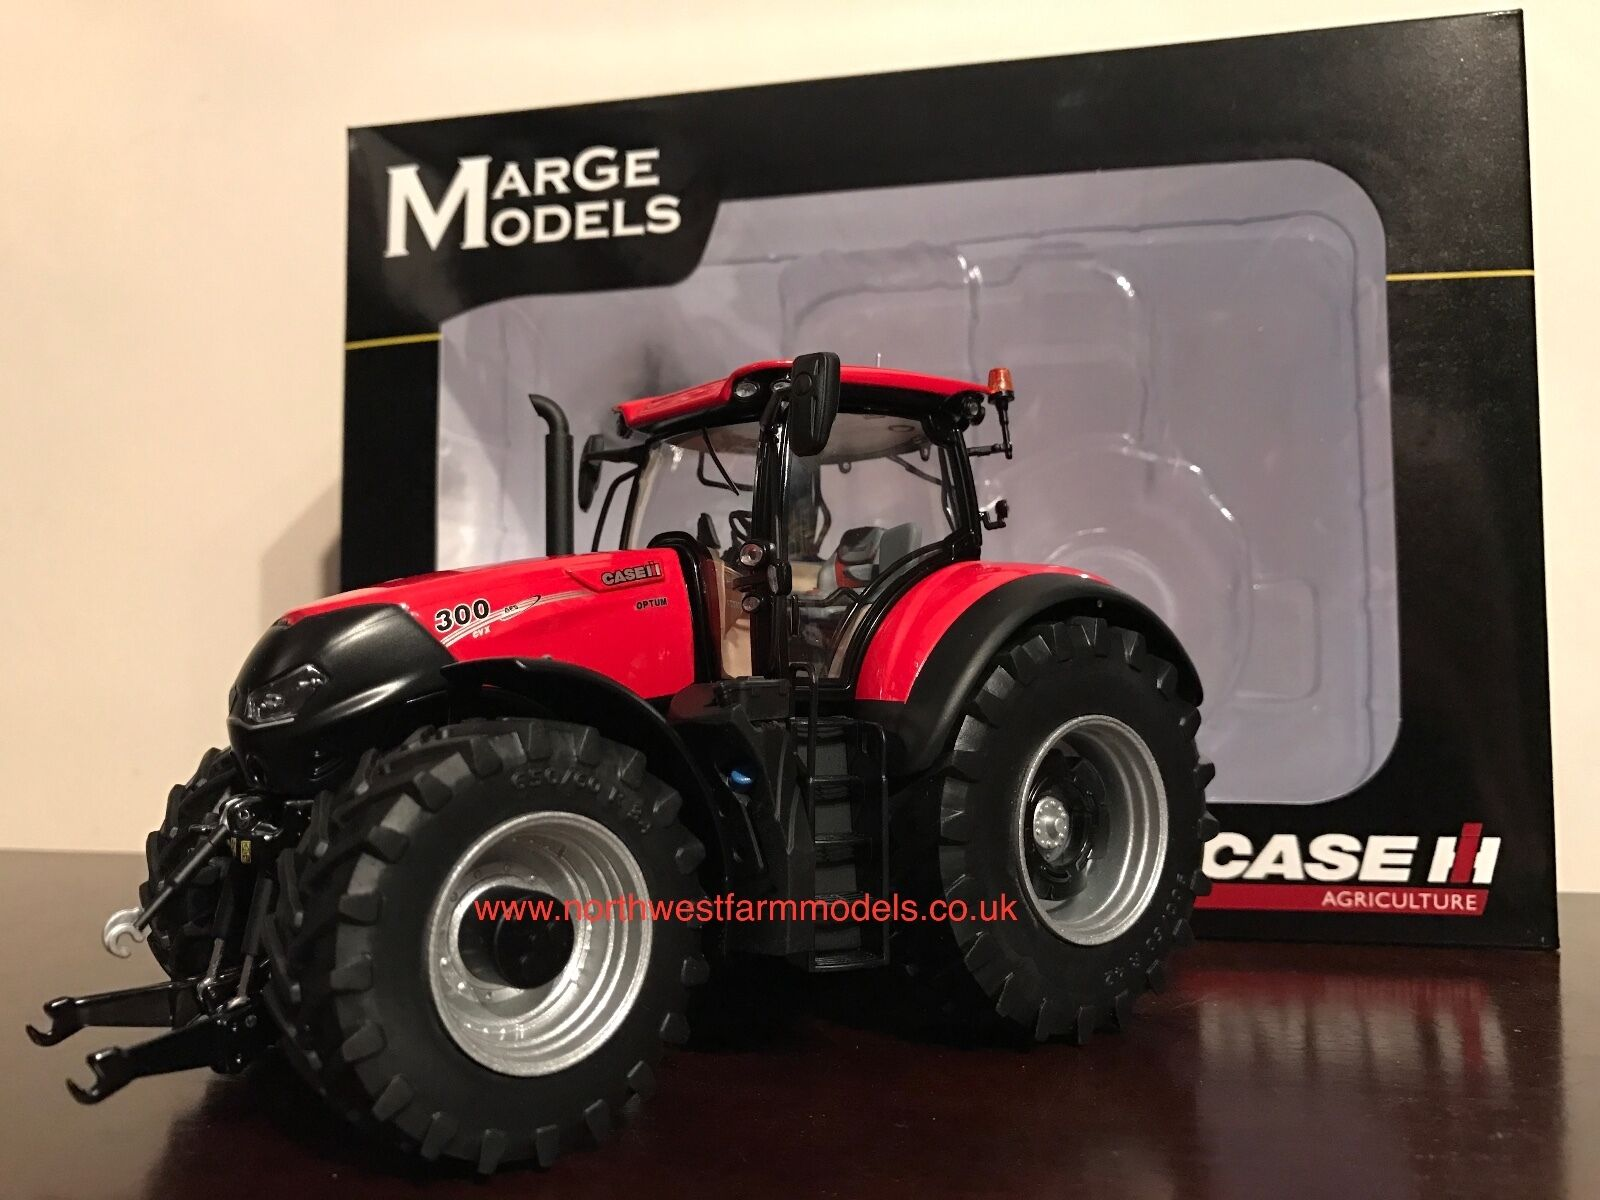 MARGE ModelllS 1 32 SCALE Fall 300 OPTUM Modelll TRACTOR  NEW